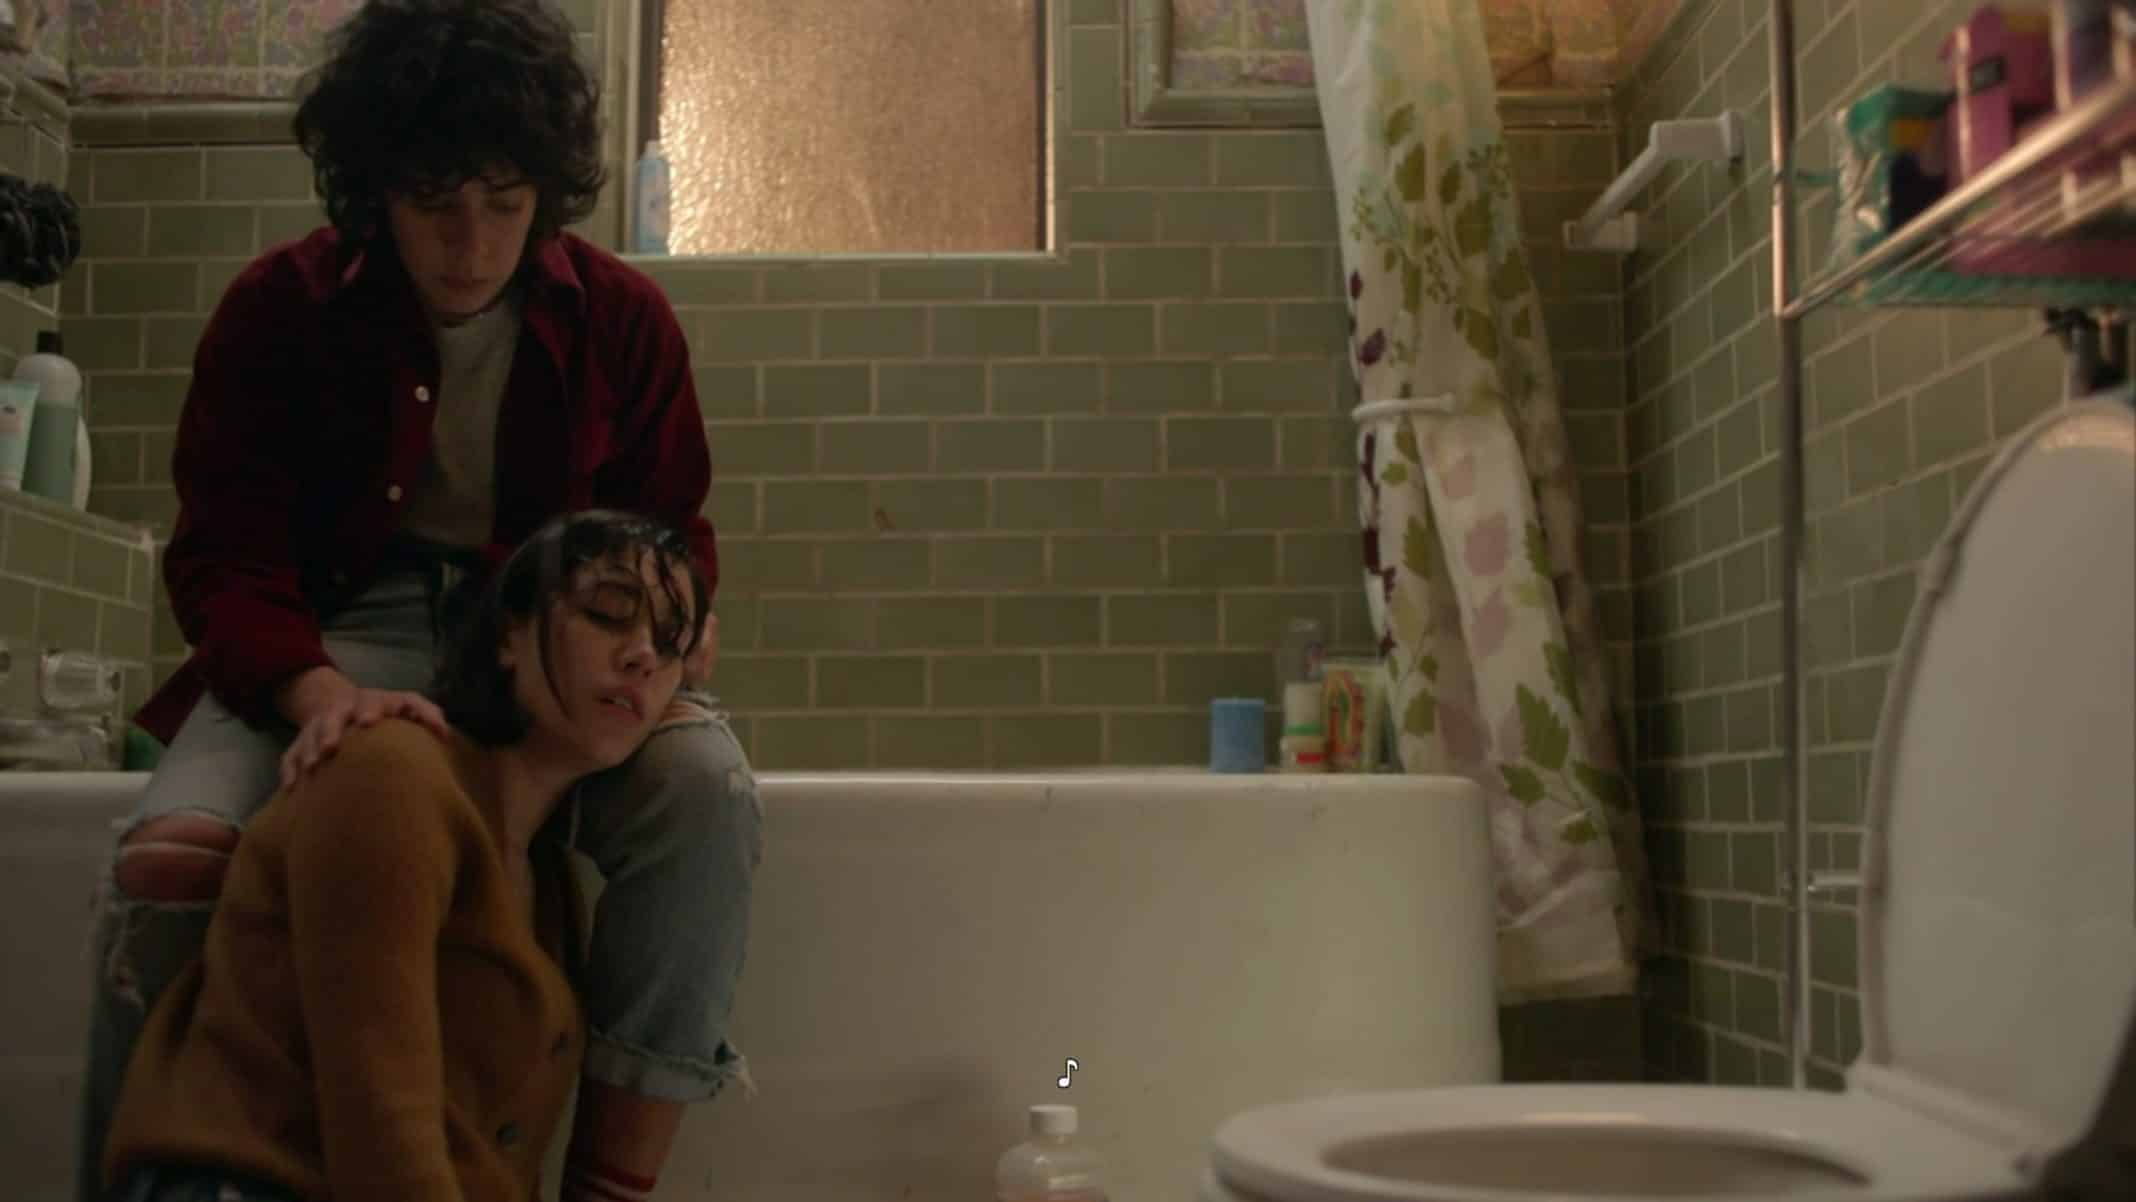 Emma in the bathroom, with Nico, dealing with being sick.